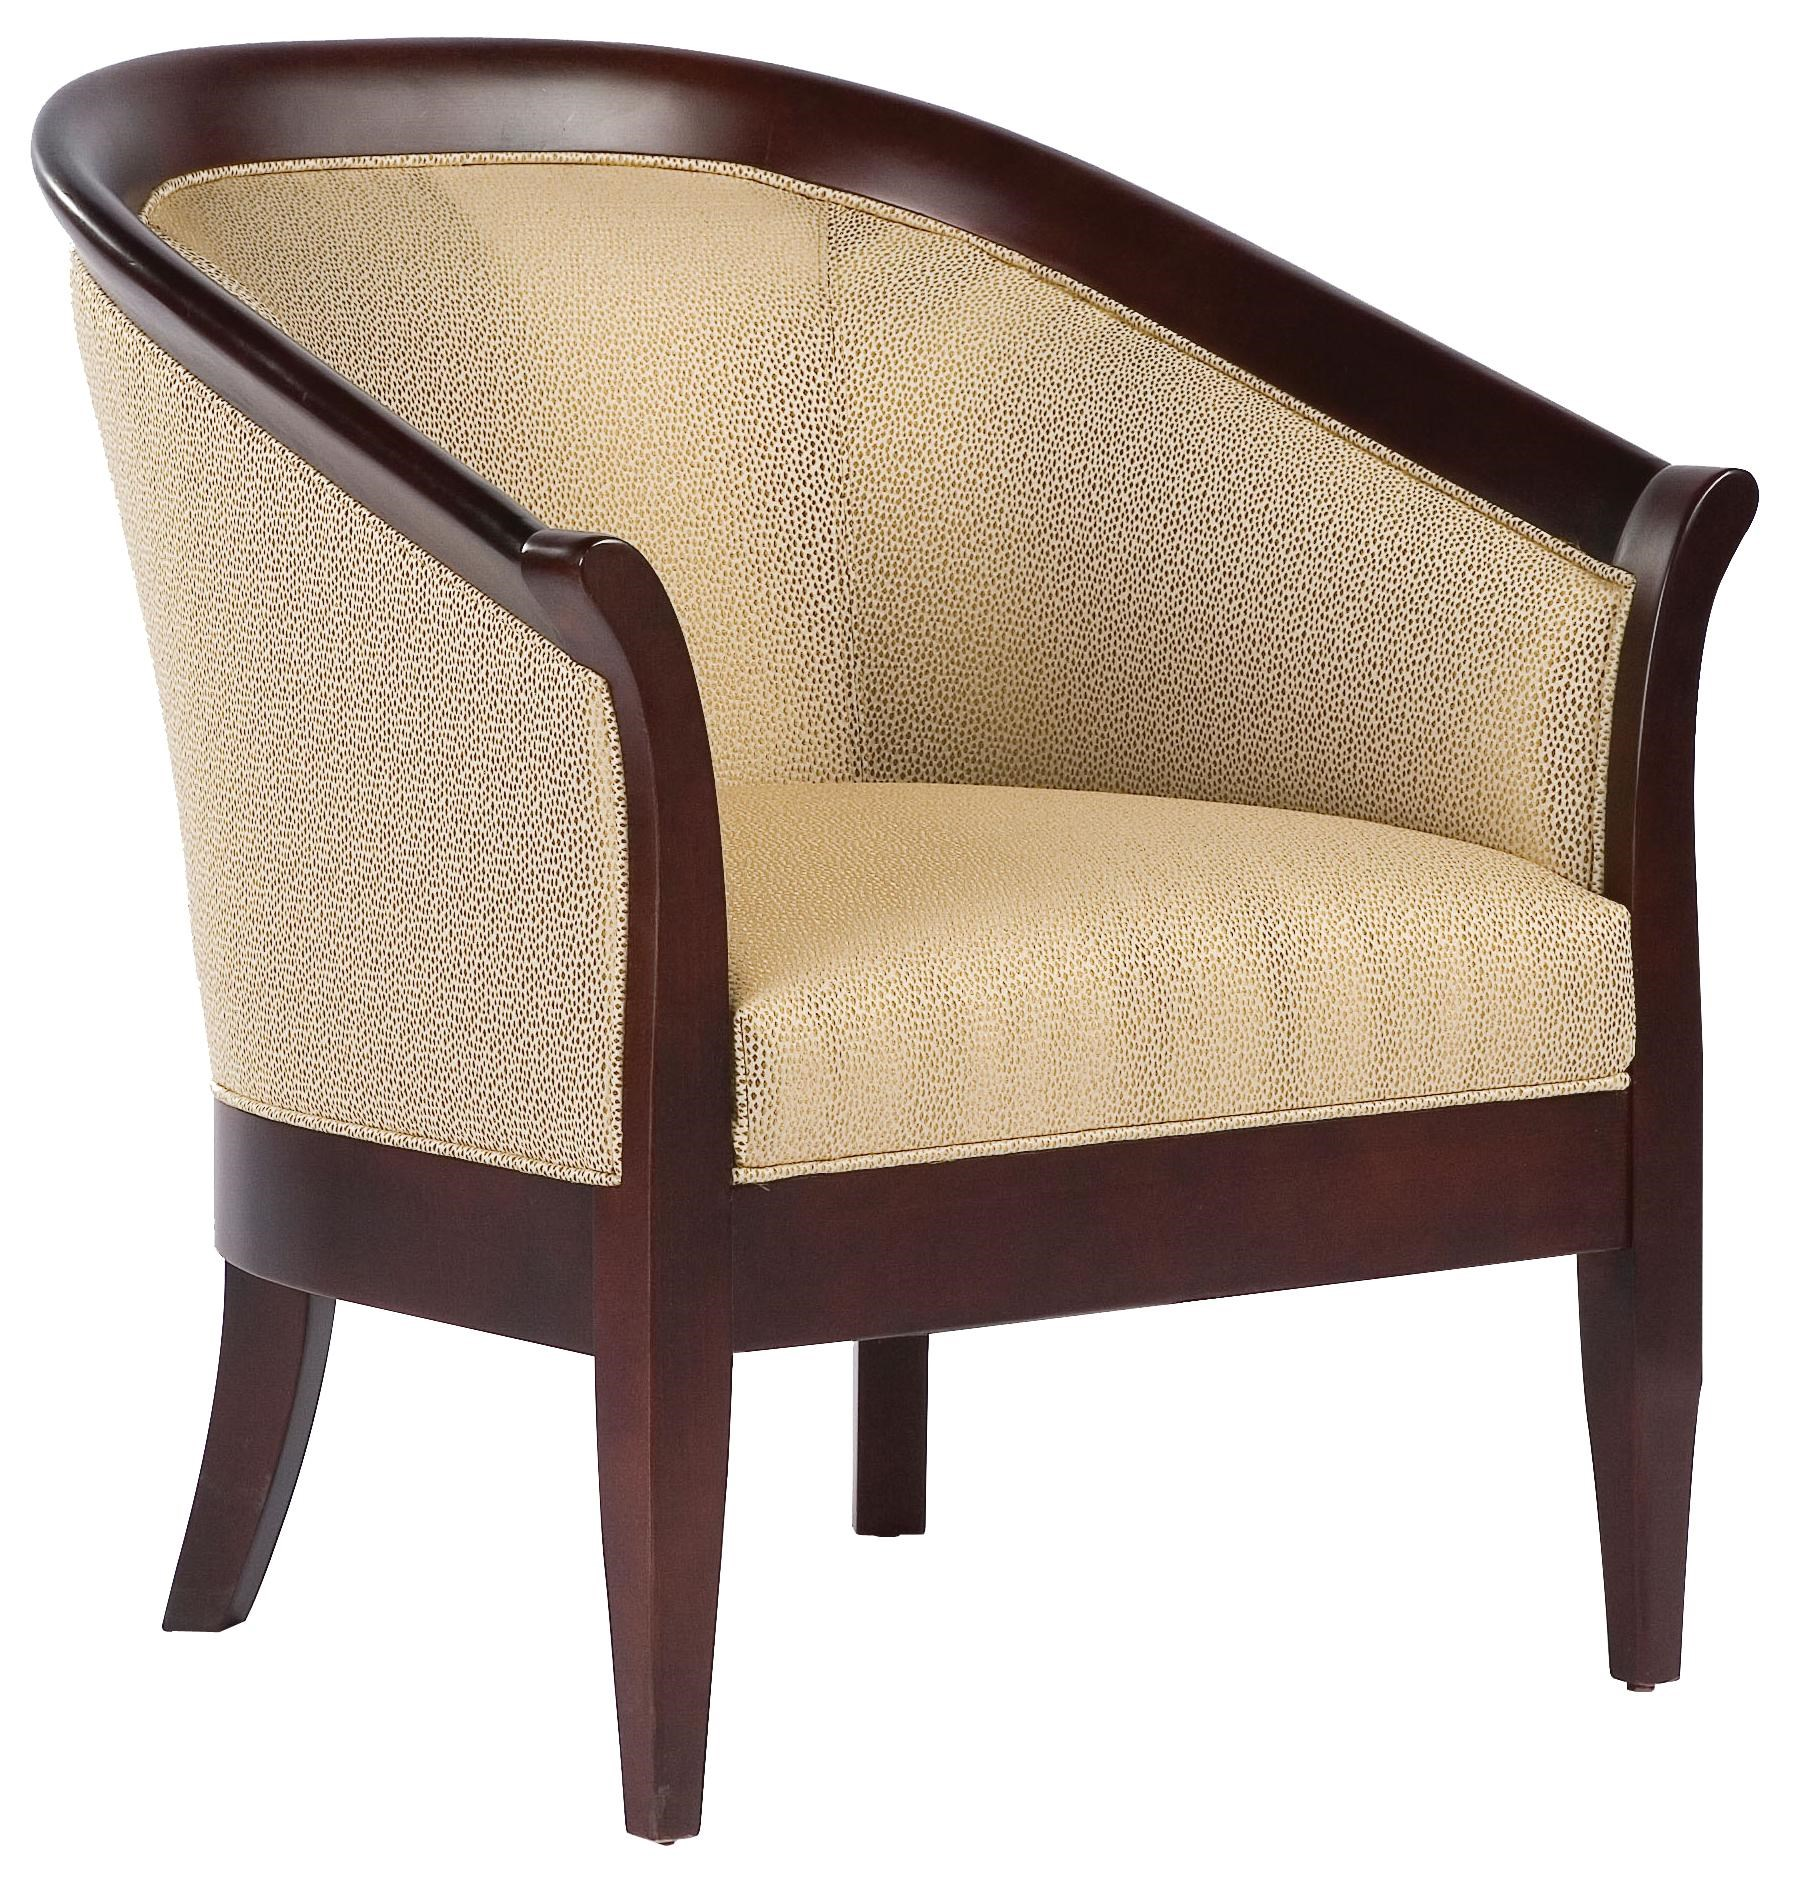 Chair Furniture chairs (fab)fairfield - belfort furniture - fairfield chairs